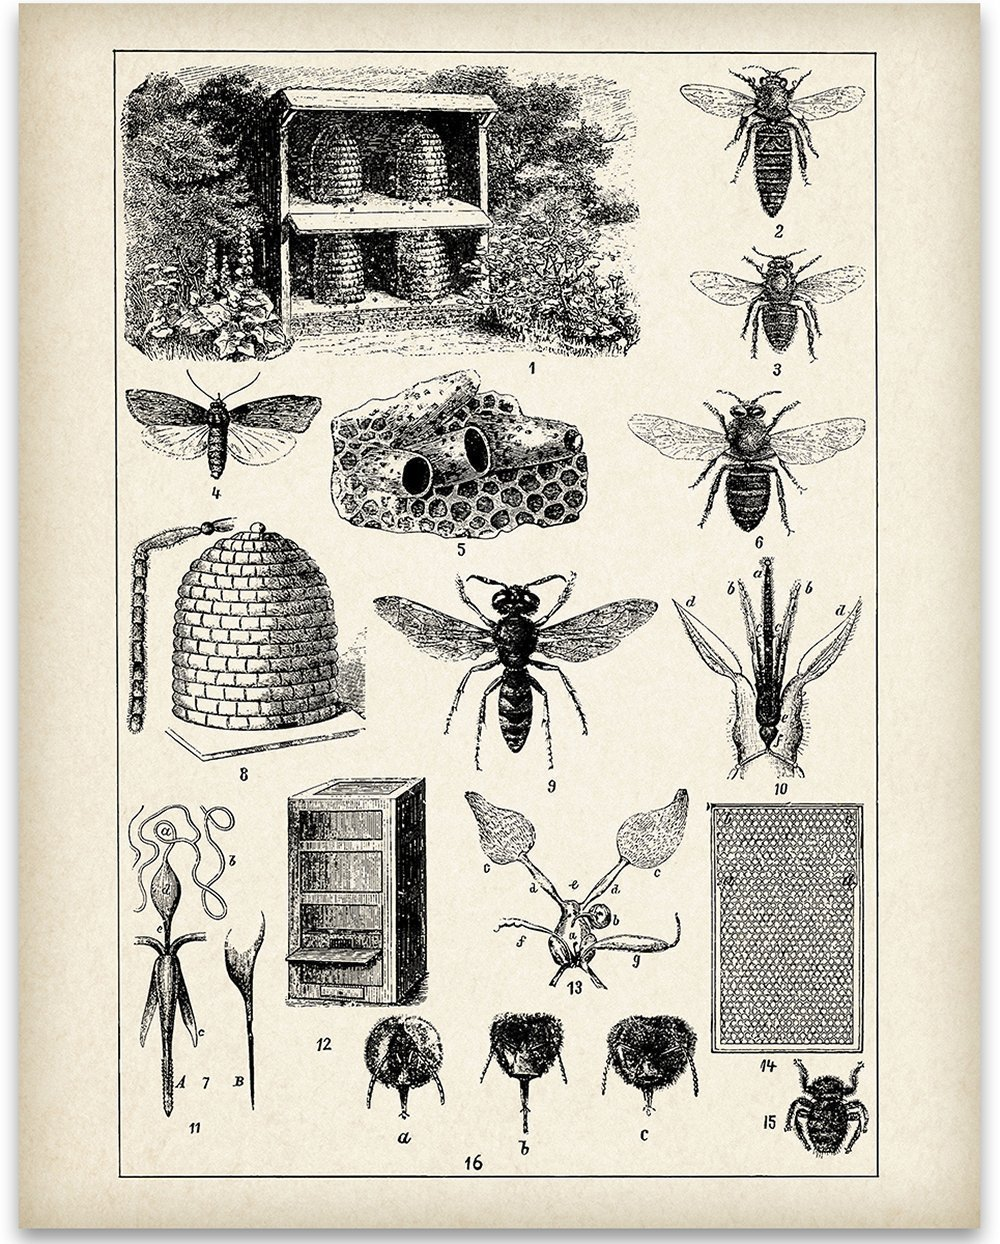 Bee Keepers Chart - 11x14 Unframed Art Print - Great Gift for Beekeepers and Nature Lovers